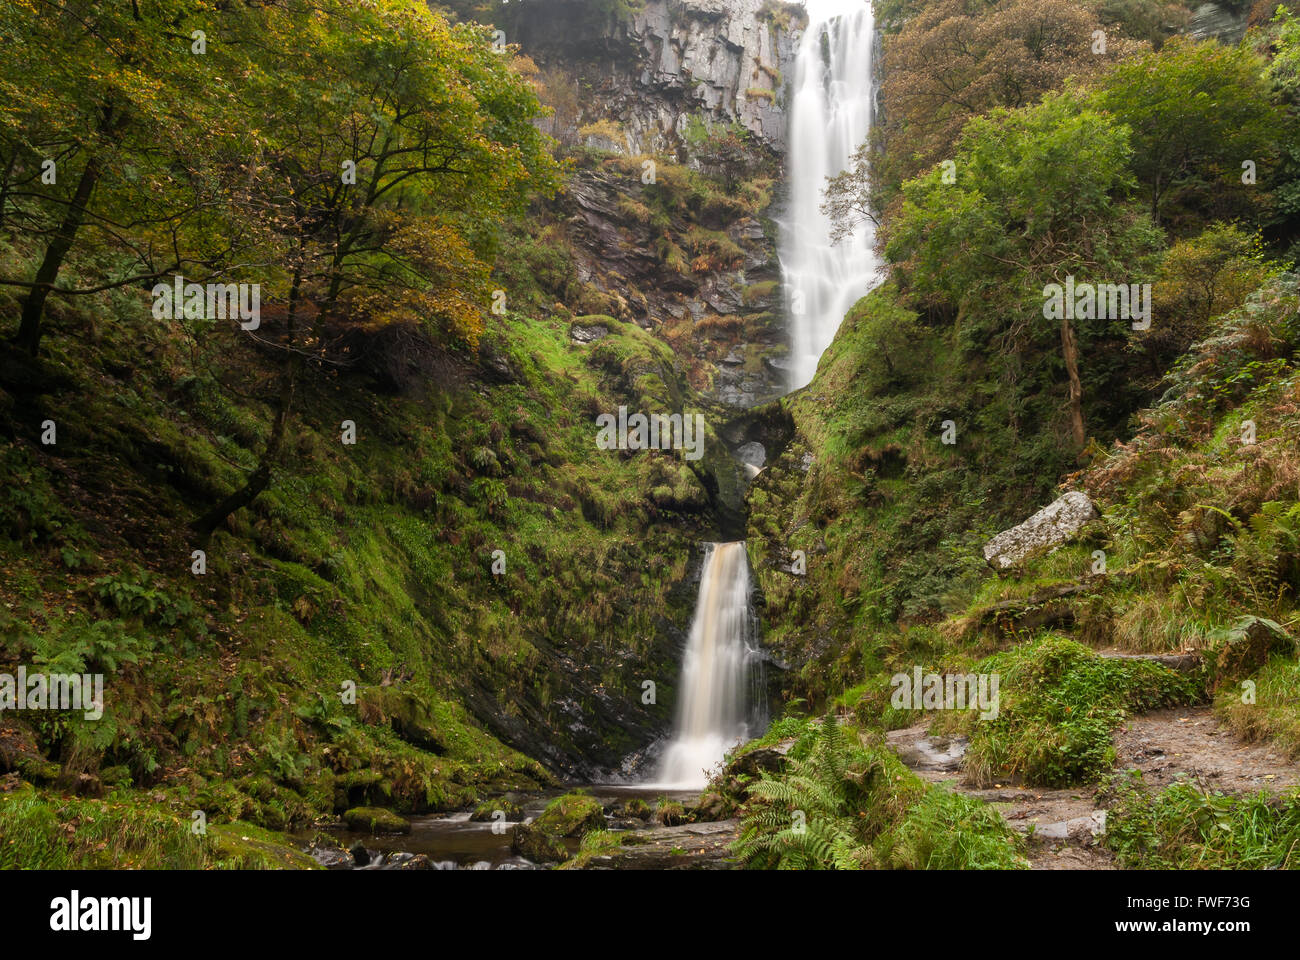 Pistyll Rhaeadr waterfall in Powys Wales one of the Seven Wonders of Wales and a Site of Special Scientific Interest - Stock Image